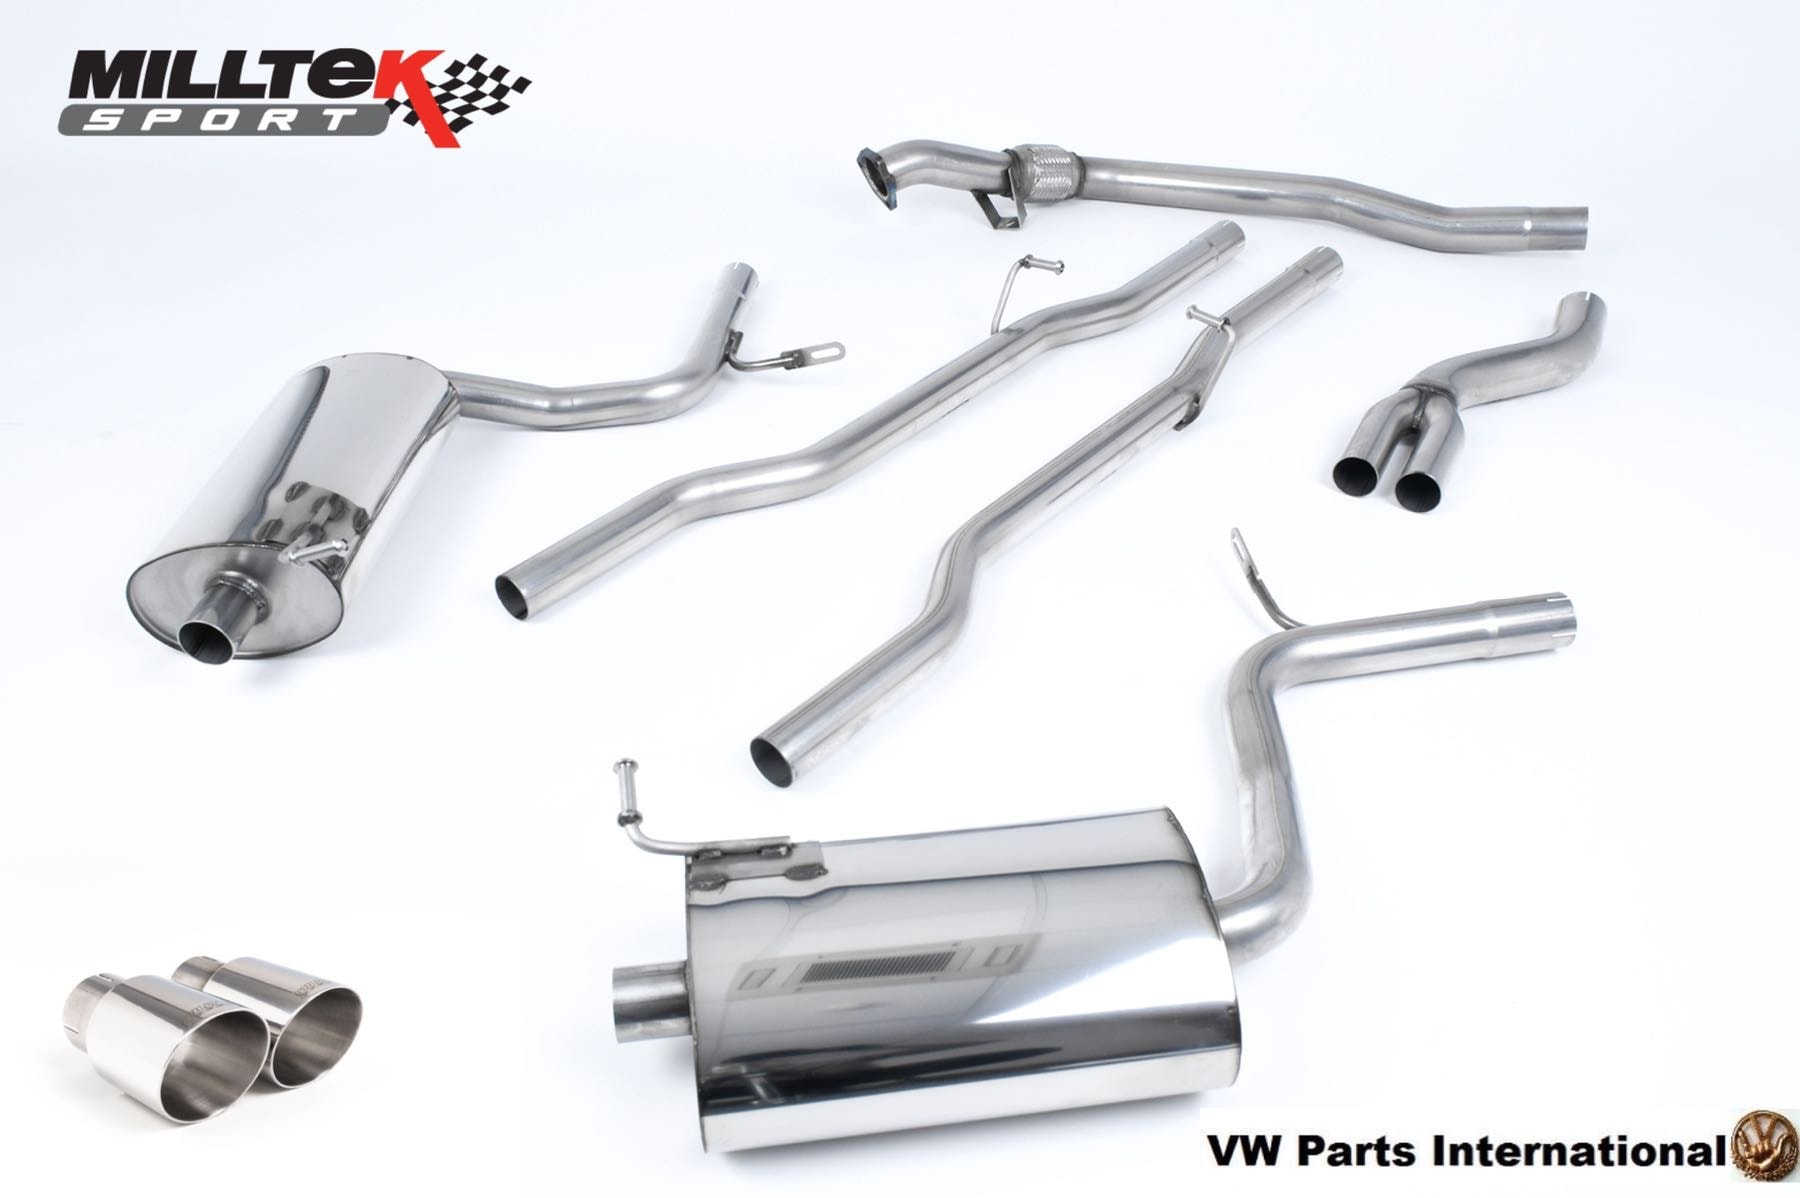 Audi A4 1.8T Quattro Milltek Sport Non Resonated Cat Back Exhaust System with GT90 90mm Detachable Trims SSXAU509